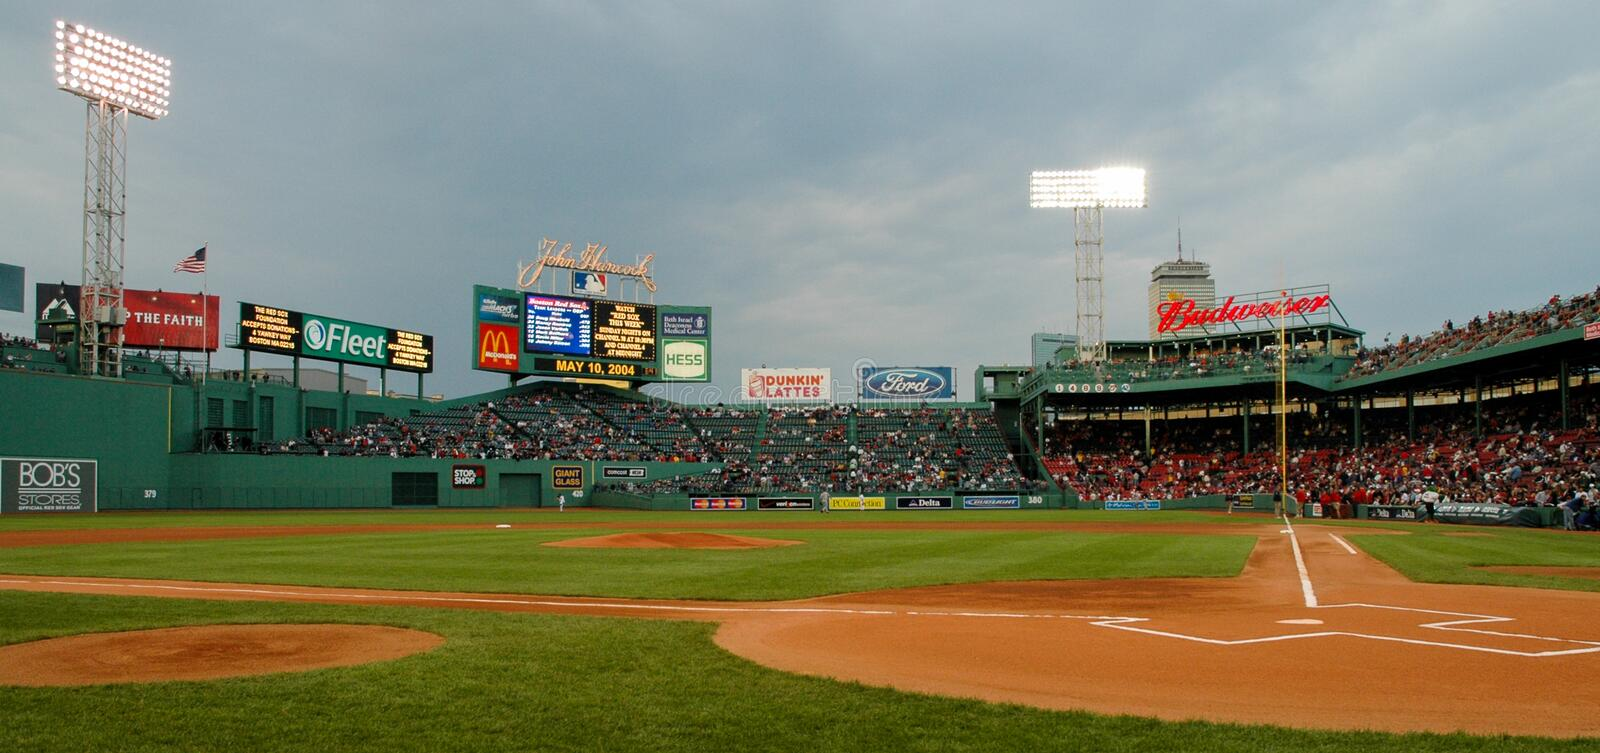 Fenway Park Boston, MA. Almost game time at Fenway Park, Boston, MA. . Image taken from color slide royalty free stock photo